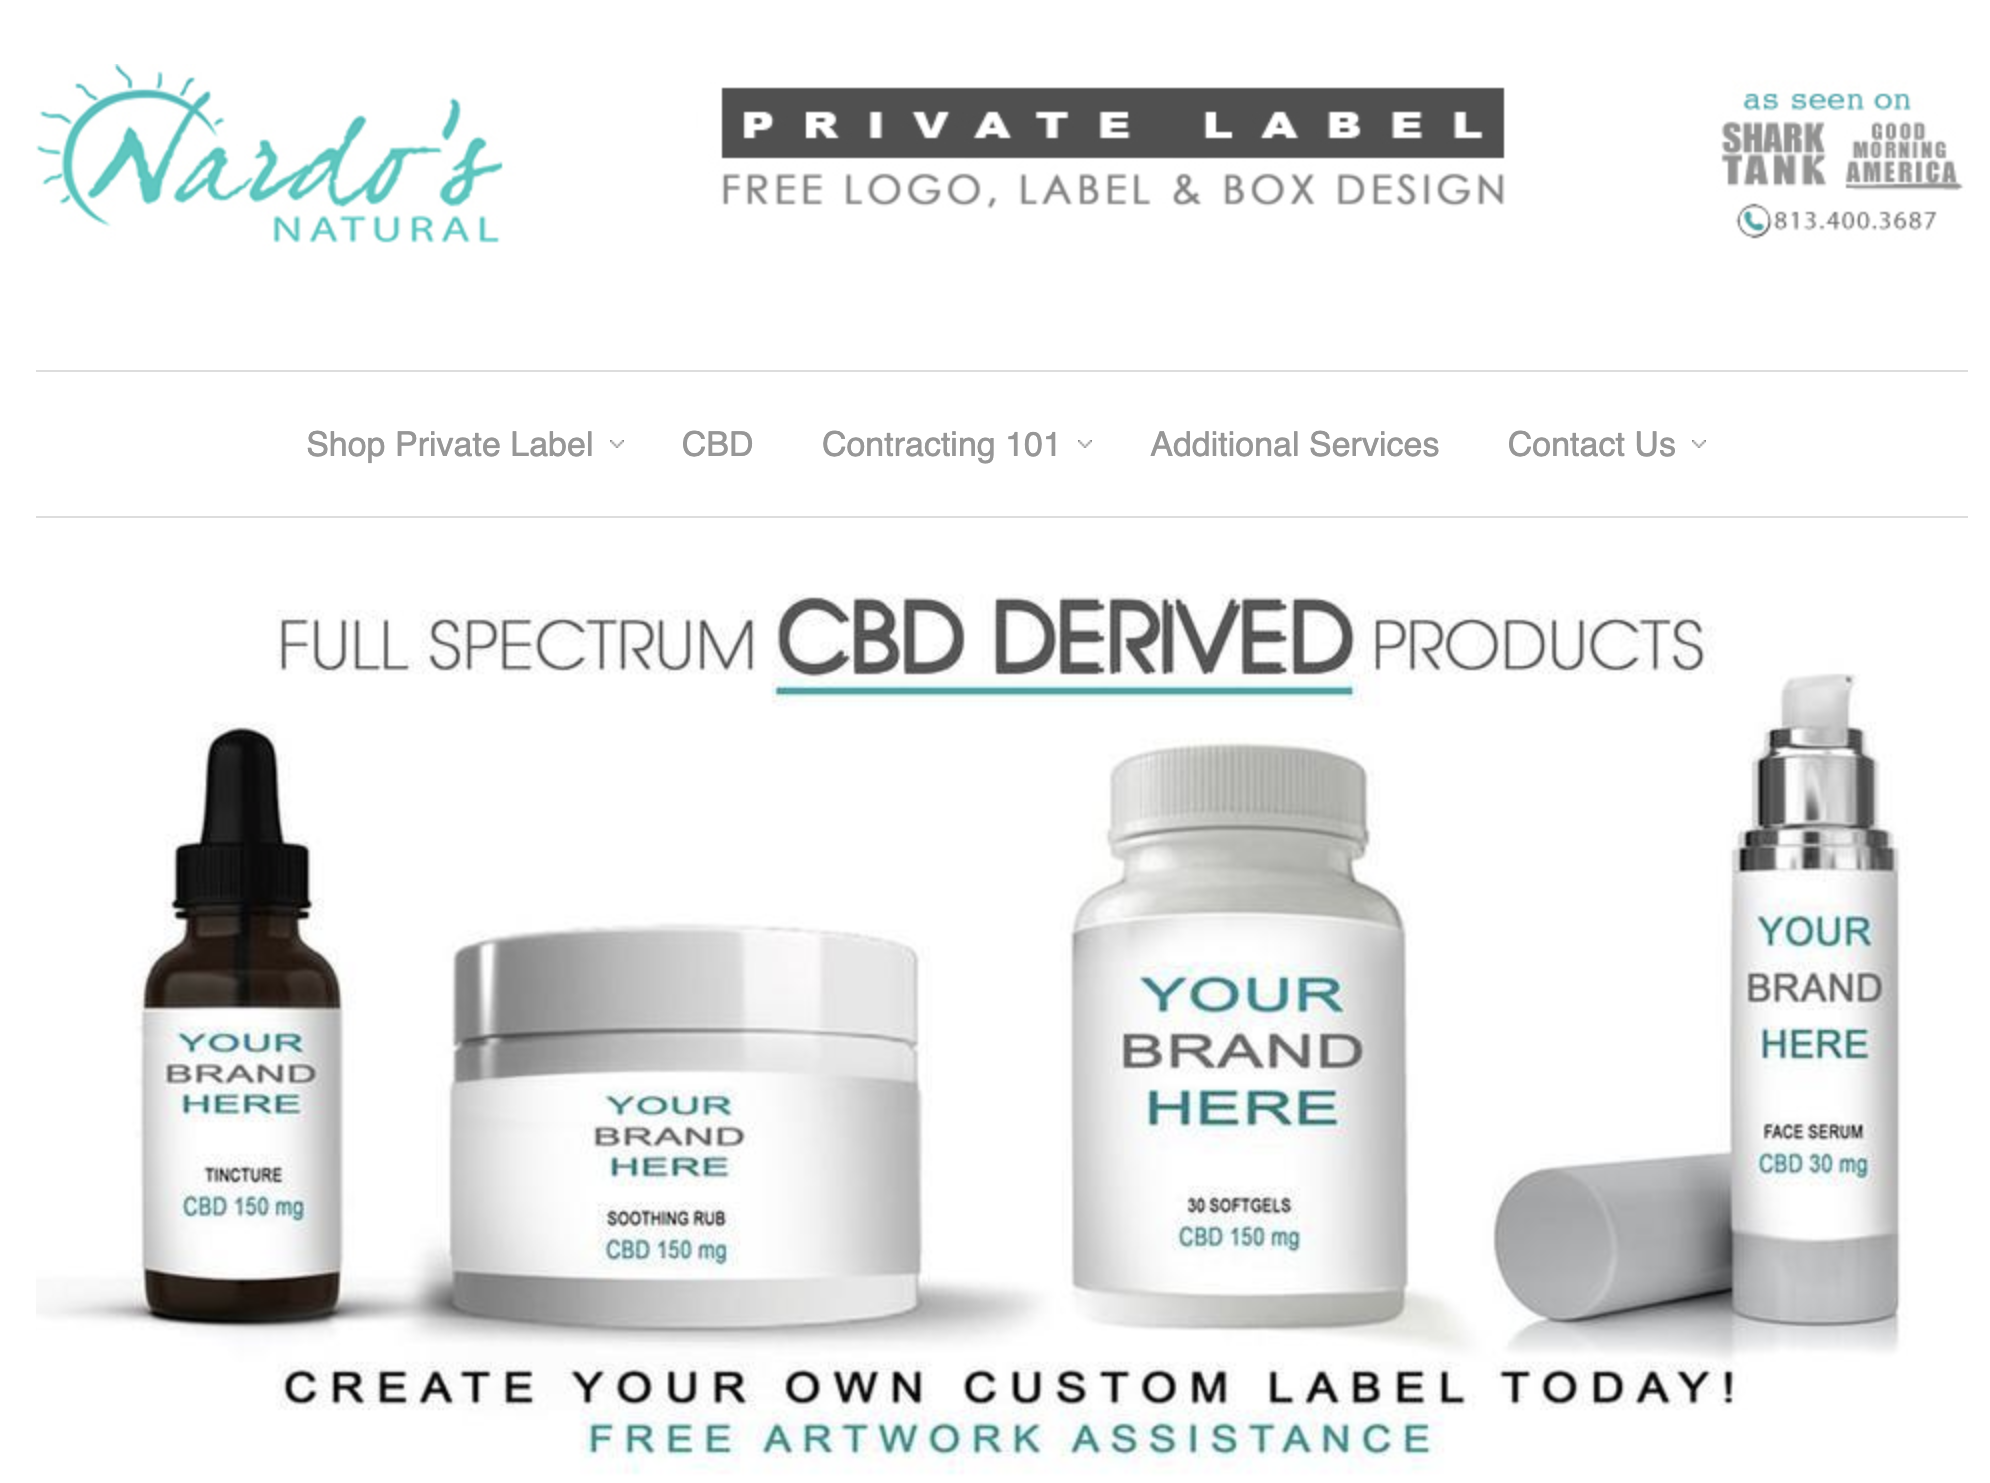 Nardo's Natural private label cosmetic packaging options